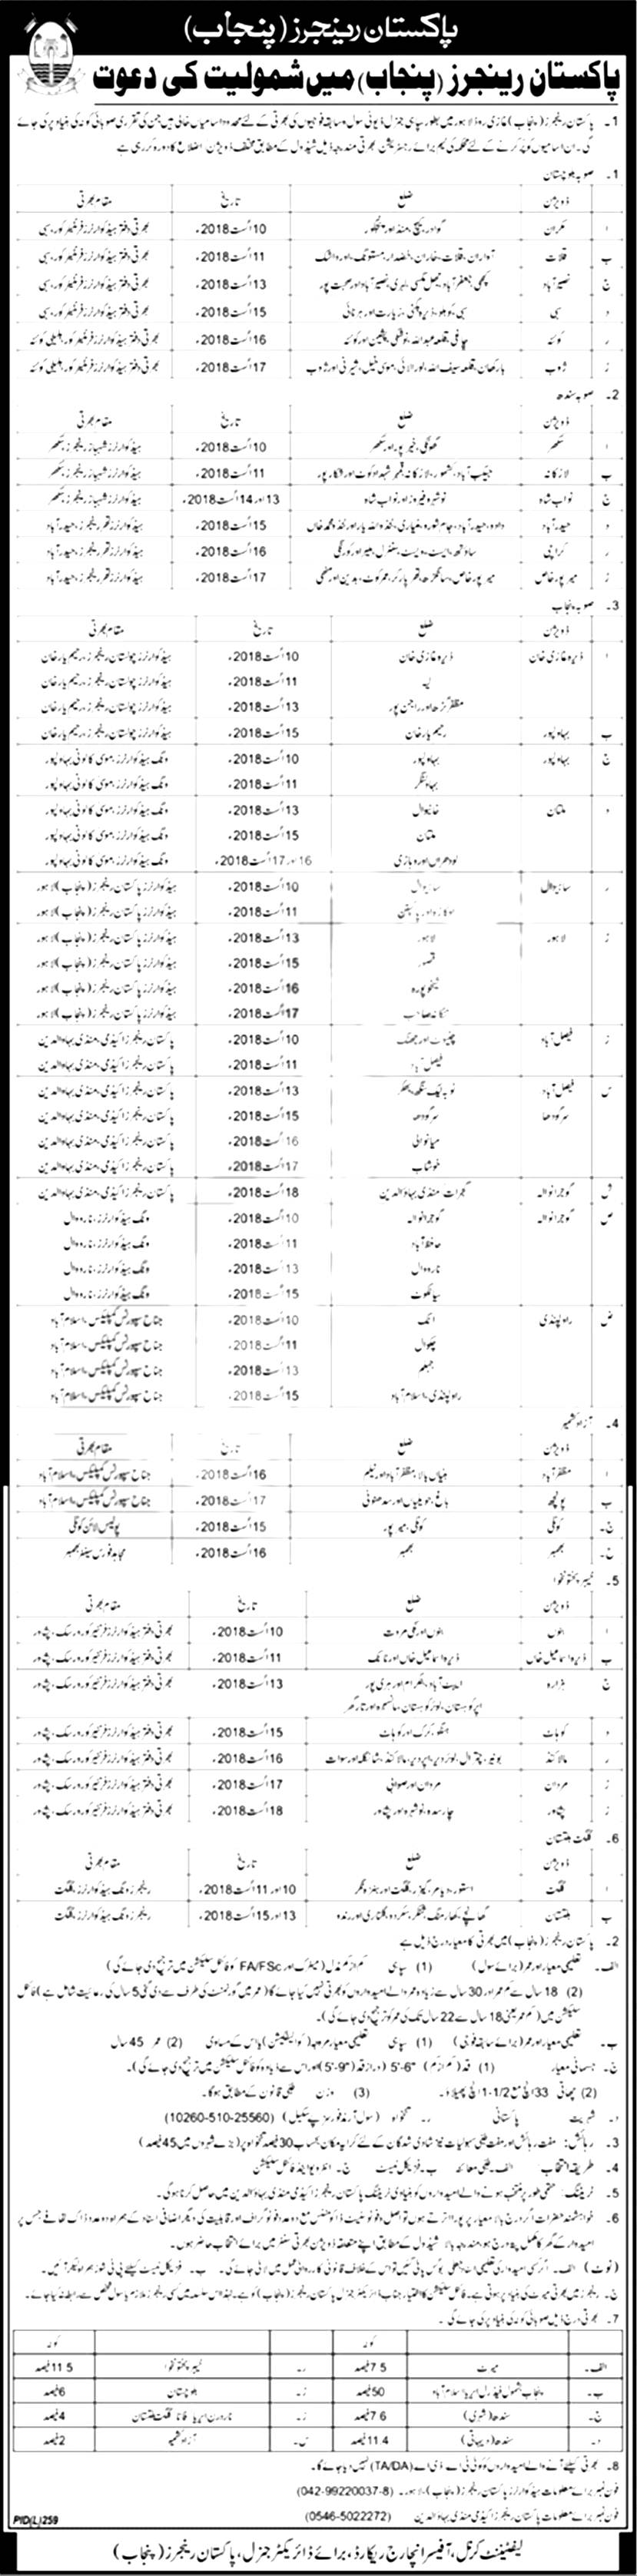 Pakistan rangers jobs 2018 for soldiers application forms roll no slips and test date download